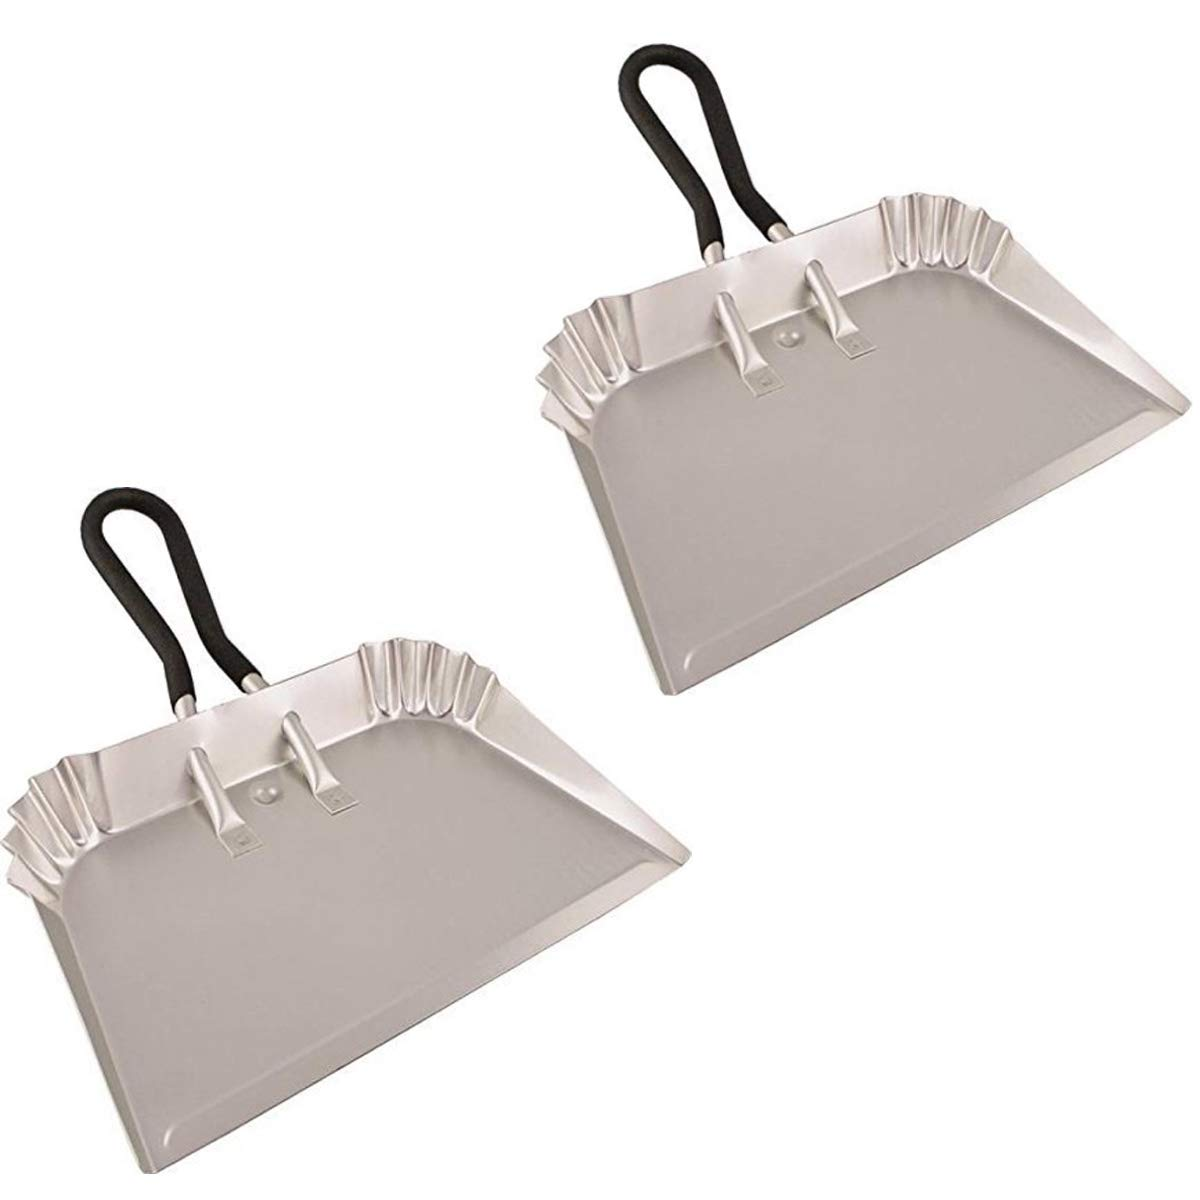 "Edward Tools Extra Large Industrial Aluminum DustPan 17"" - Lightweight - half the weight of steel dust pans with equal strength - For large cleanups - Rubber Loop handle for comfort/hanging (2)"